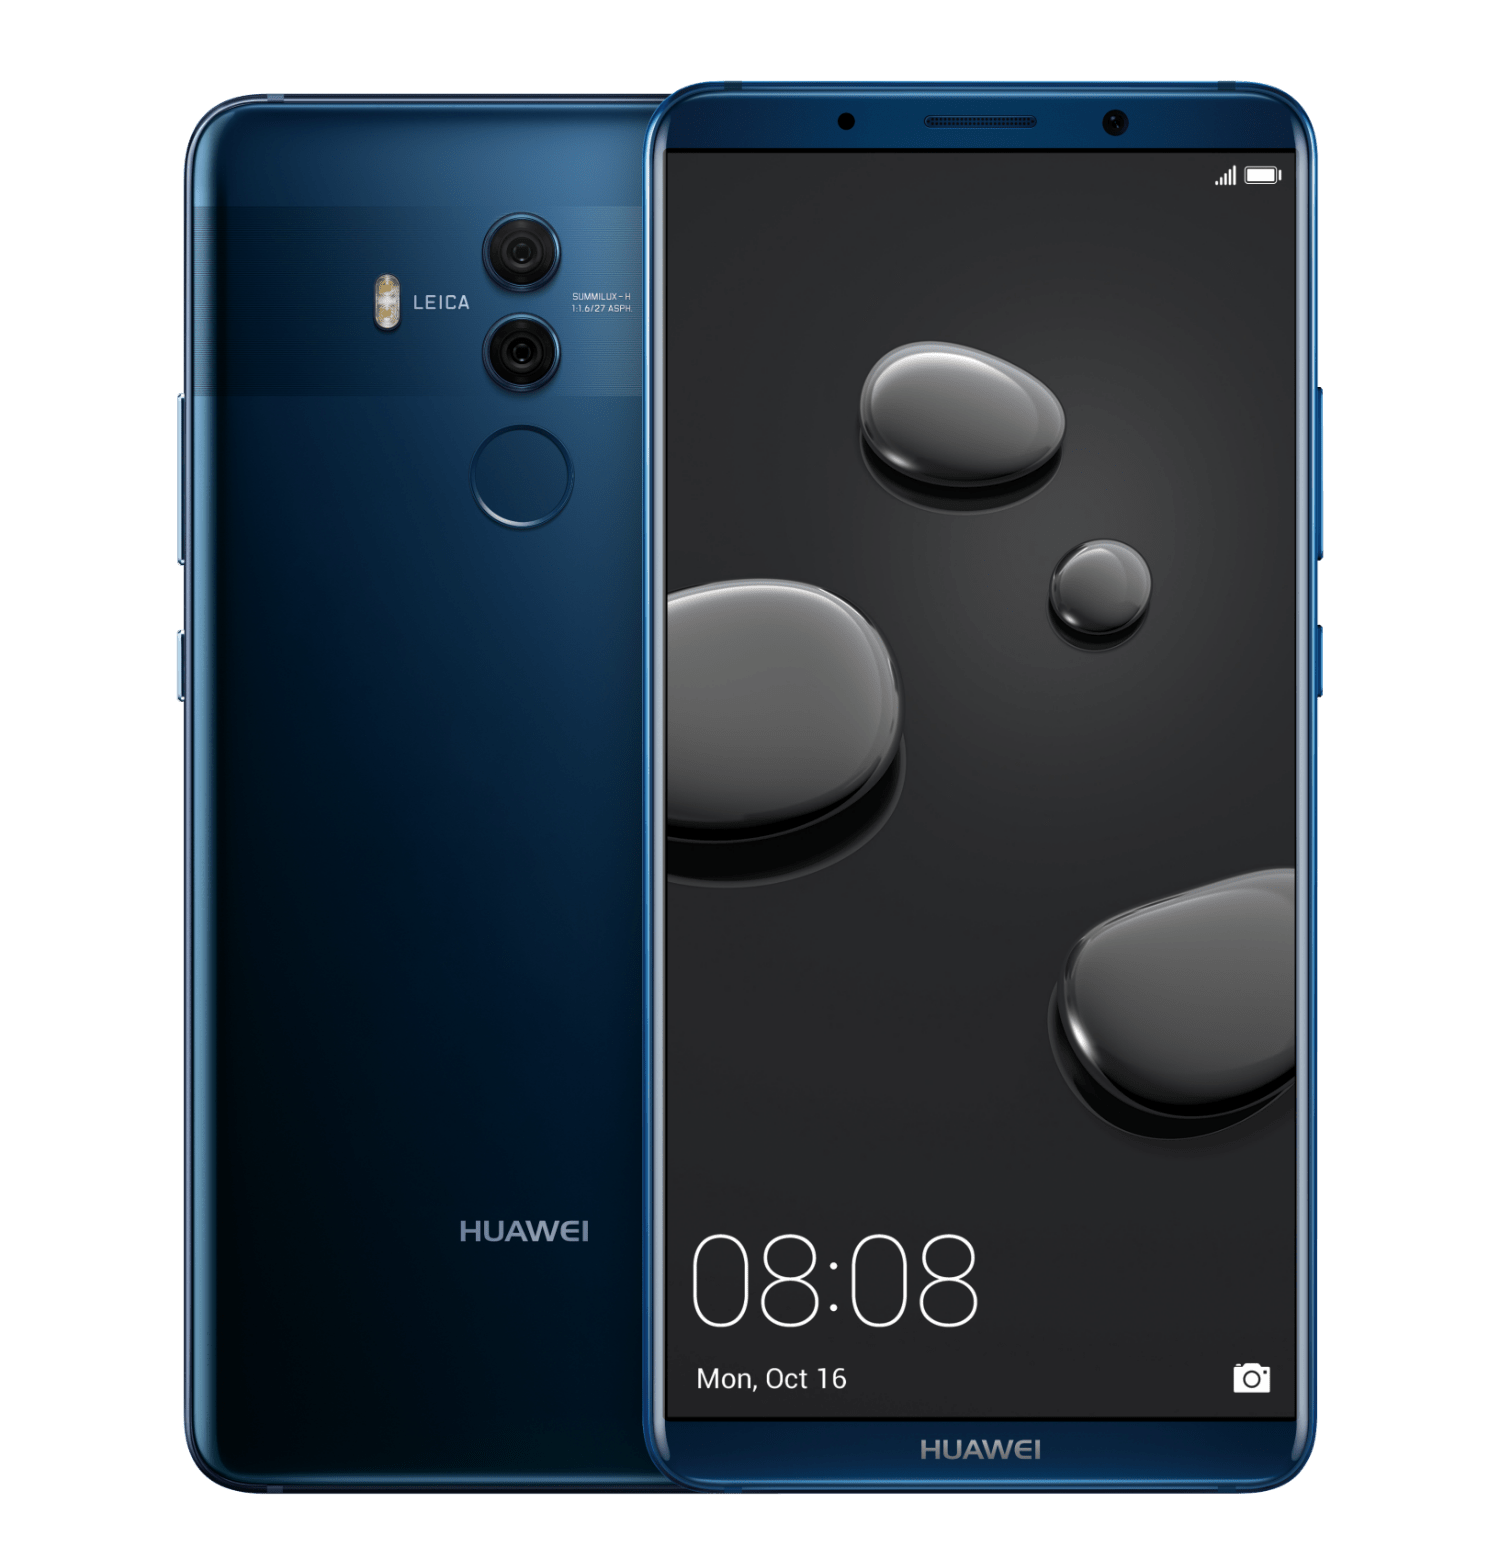 HUAWEI-Mate-10-Pro-Midnight-Blue_web.png